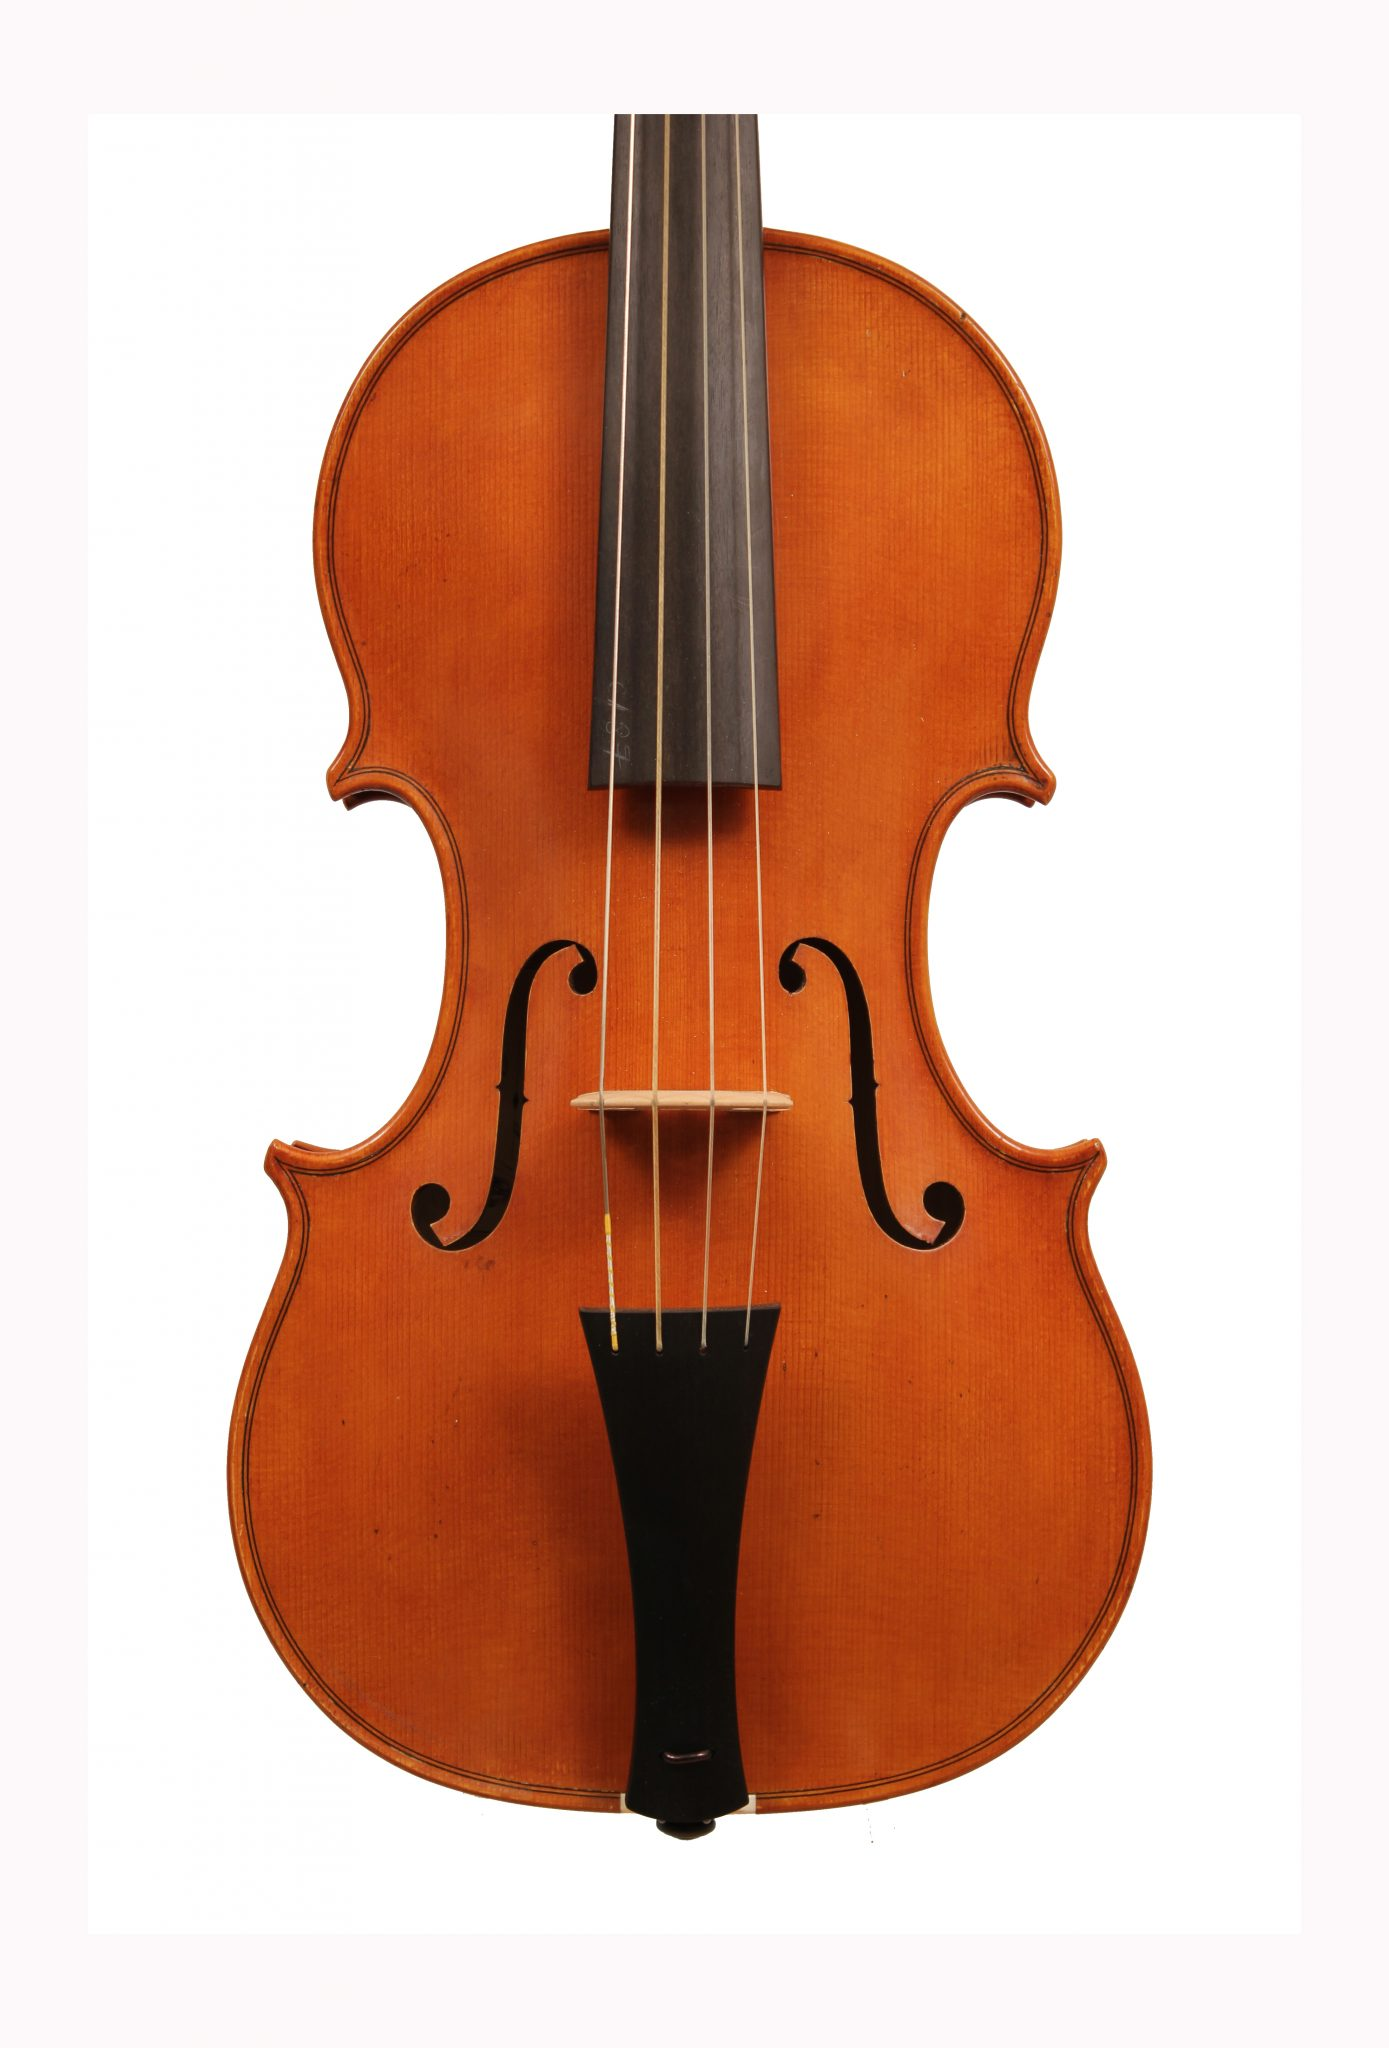 Baroque violin by Ted Gaut 2009 for sale at Bridgewood and Neitzert London